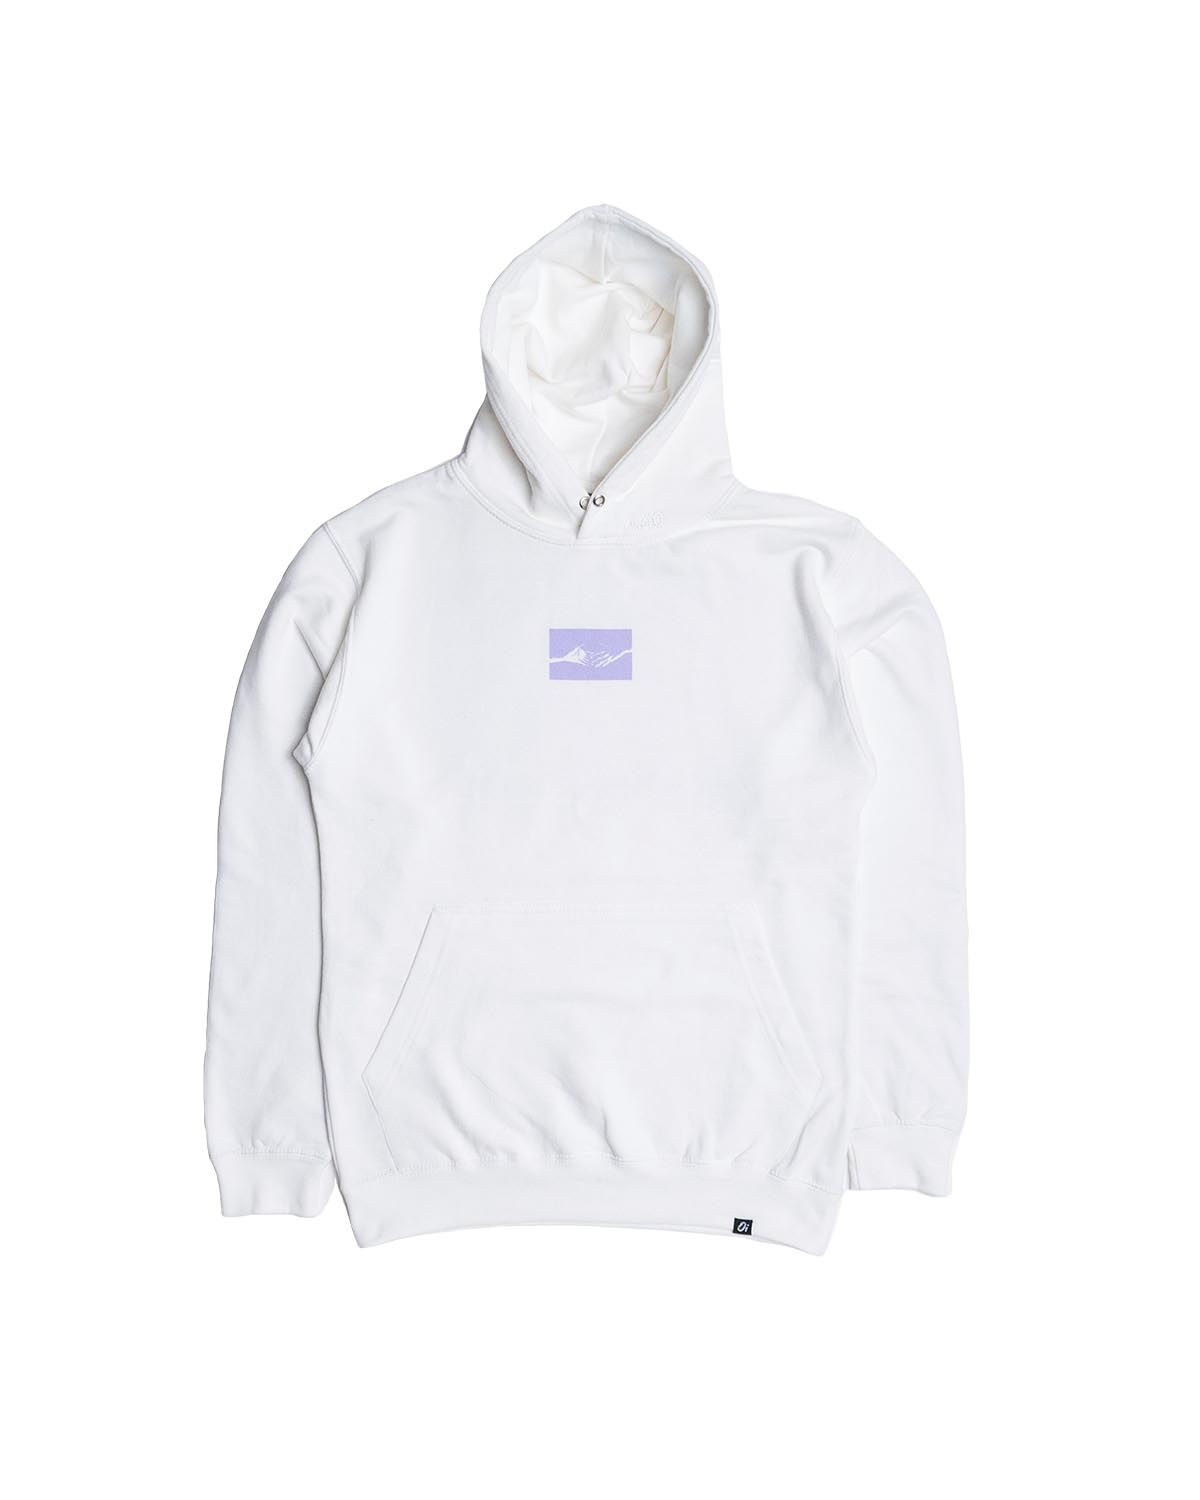 Love Without Words White Hoodie